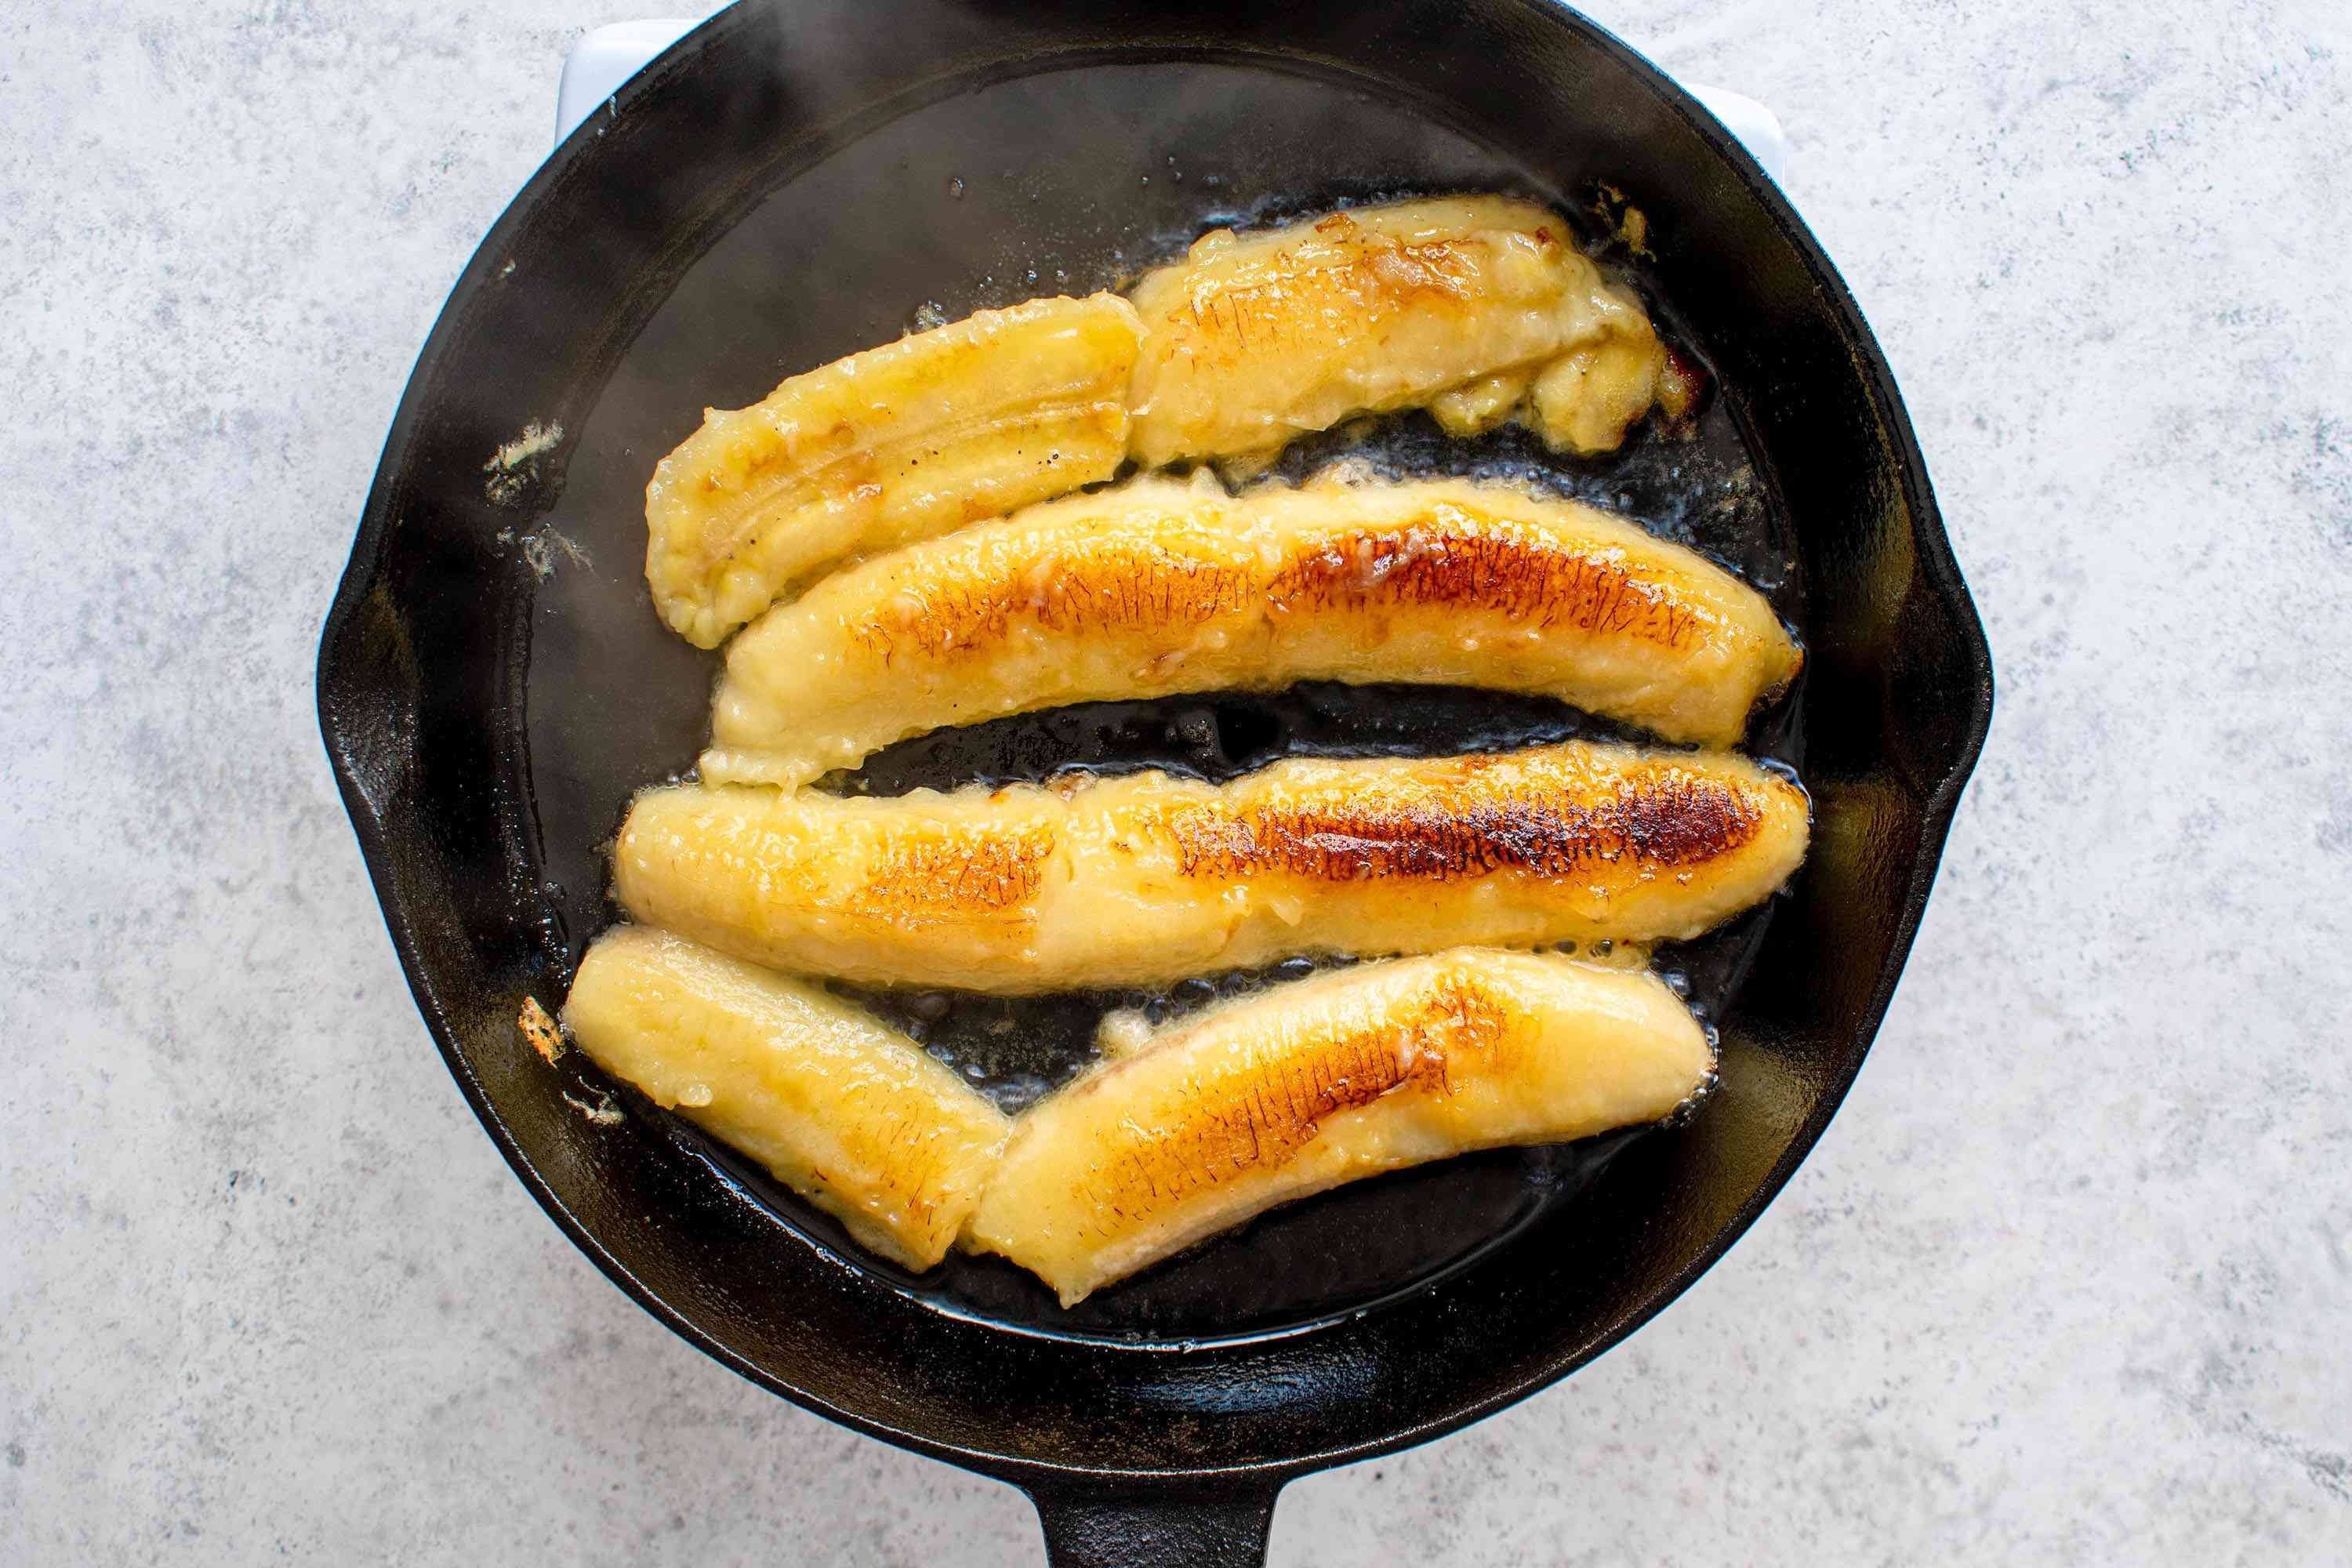 Brown the bananas in a frying pan